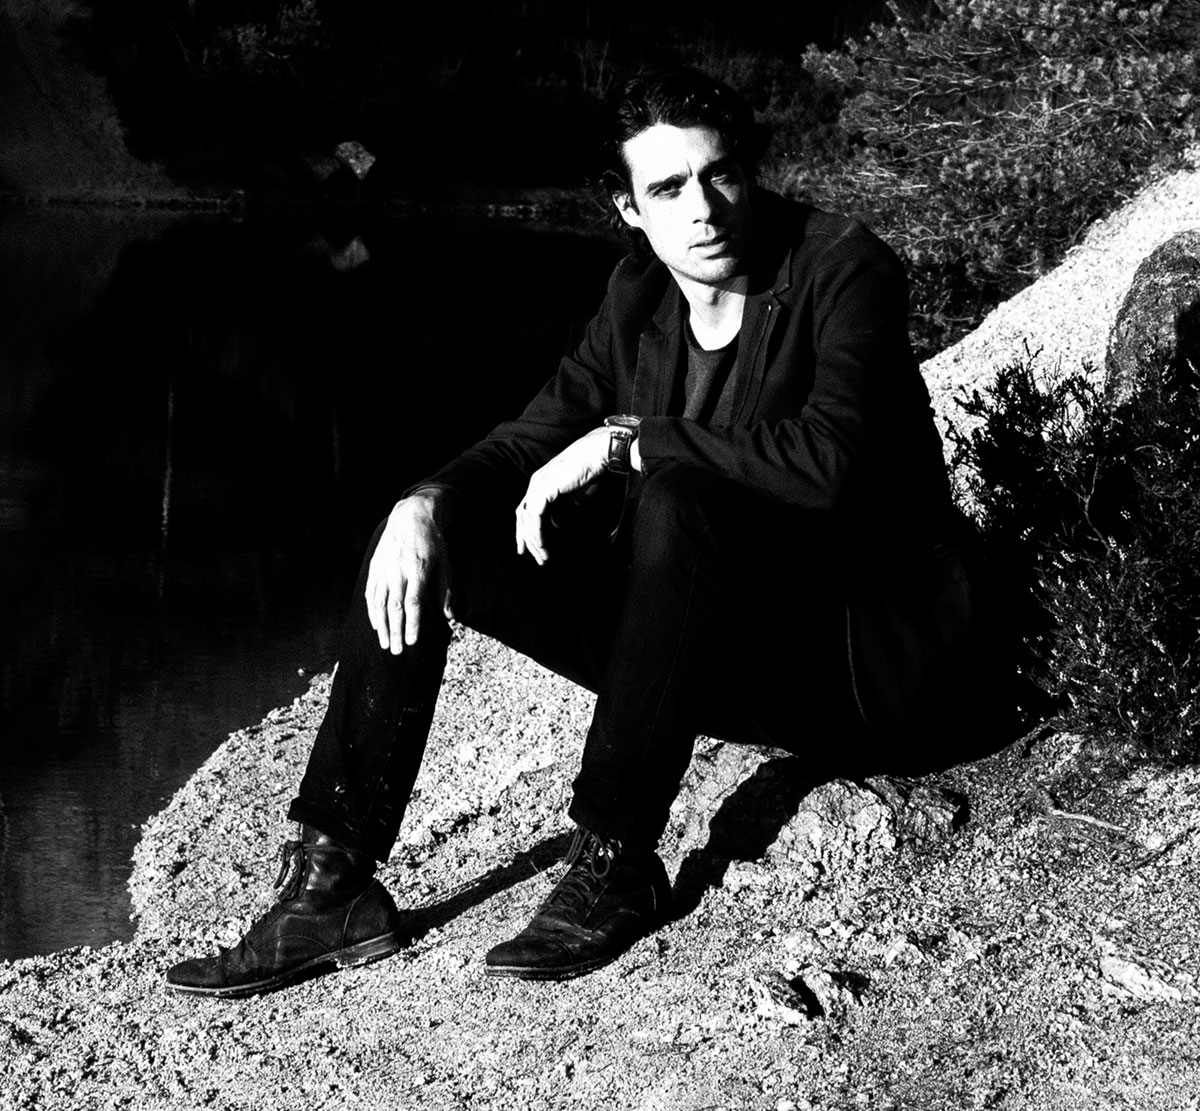 Photo of Psychedelic Indie Rock Music Artist Samuel Christen, full body photo sitting by the water